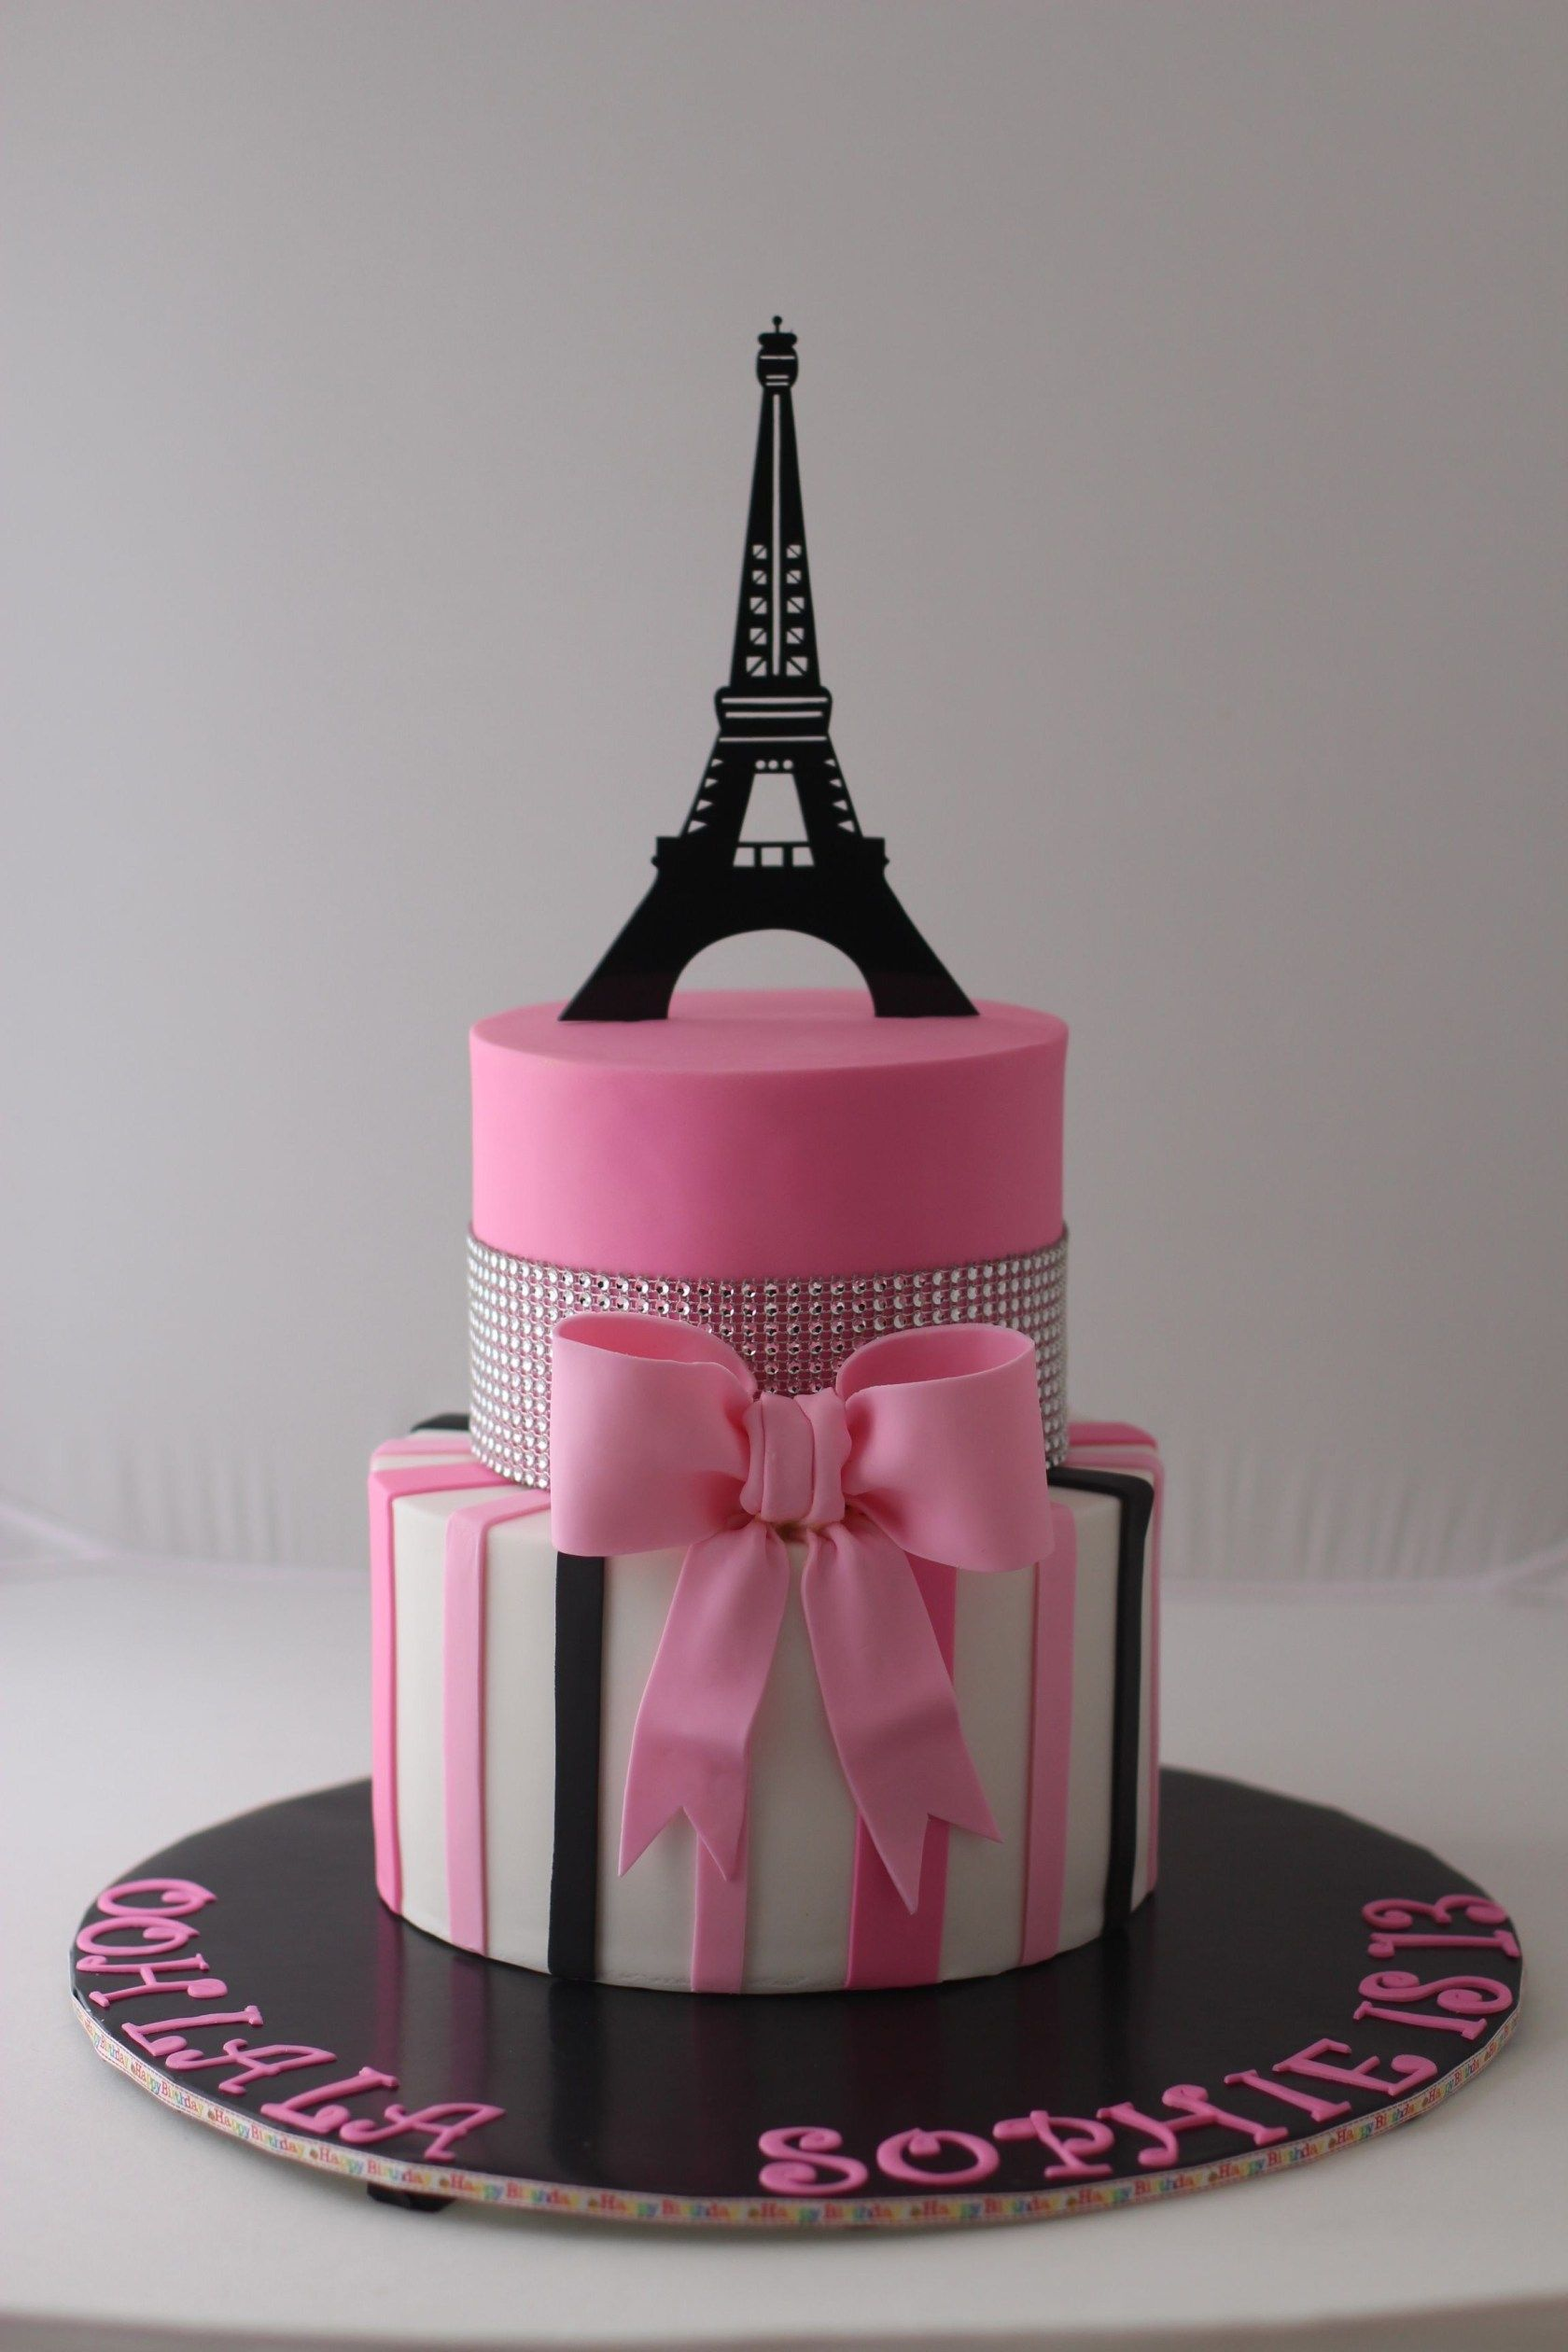 Stupendous 13 Year Old Birthday Cakes Paris Themed Birthday Cake For A 13 Funny Birthday Cards Online Inifodamsfinfo